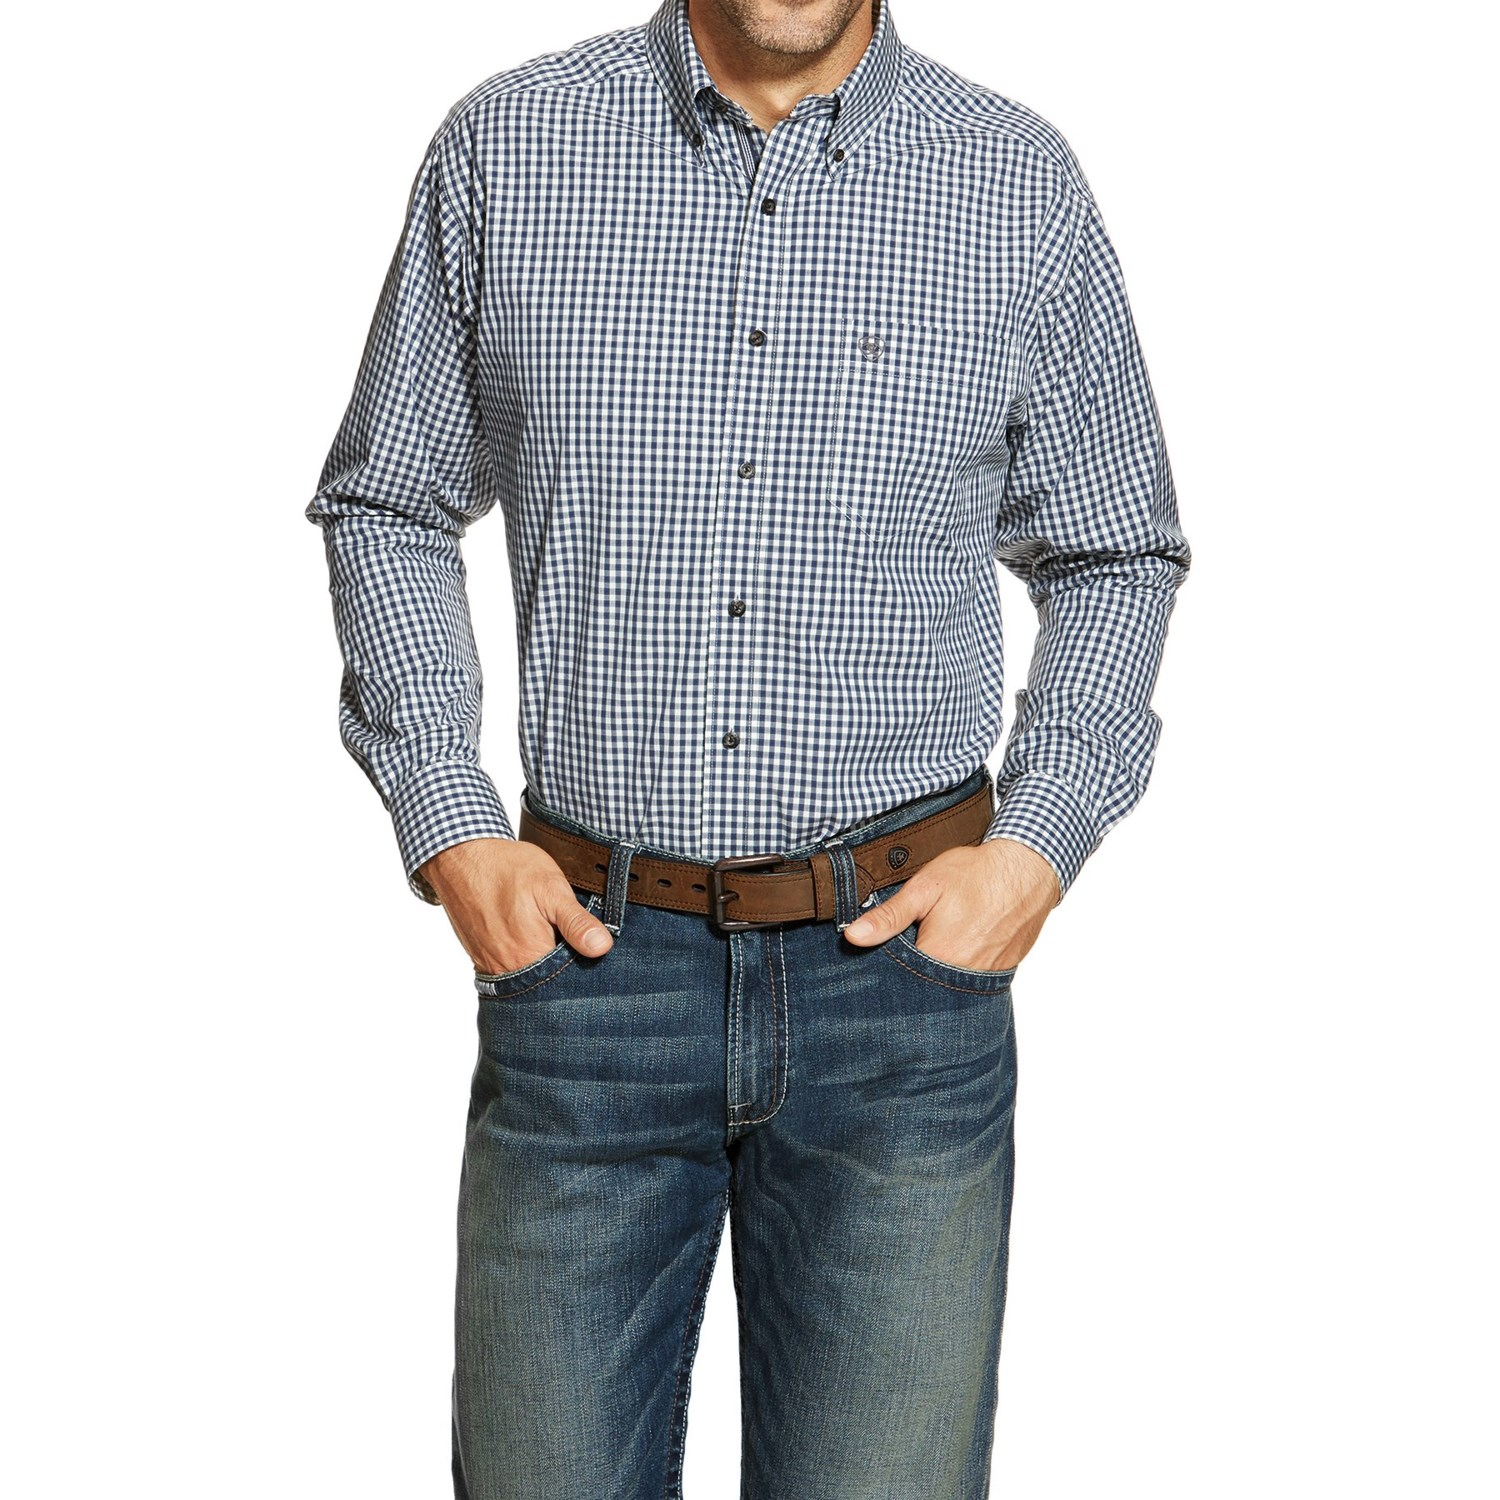 Ariat gavril high performance western shirt for men and for Mens tall western shirts